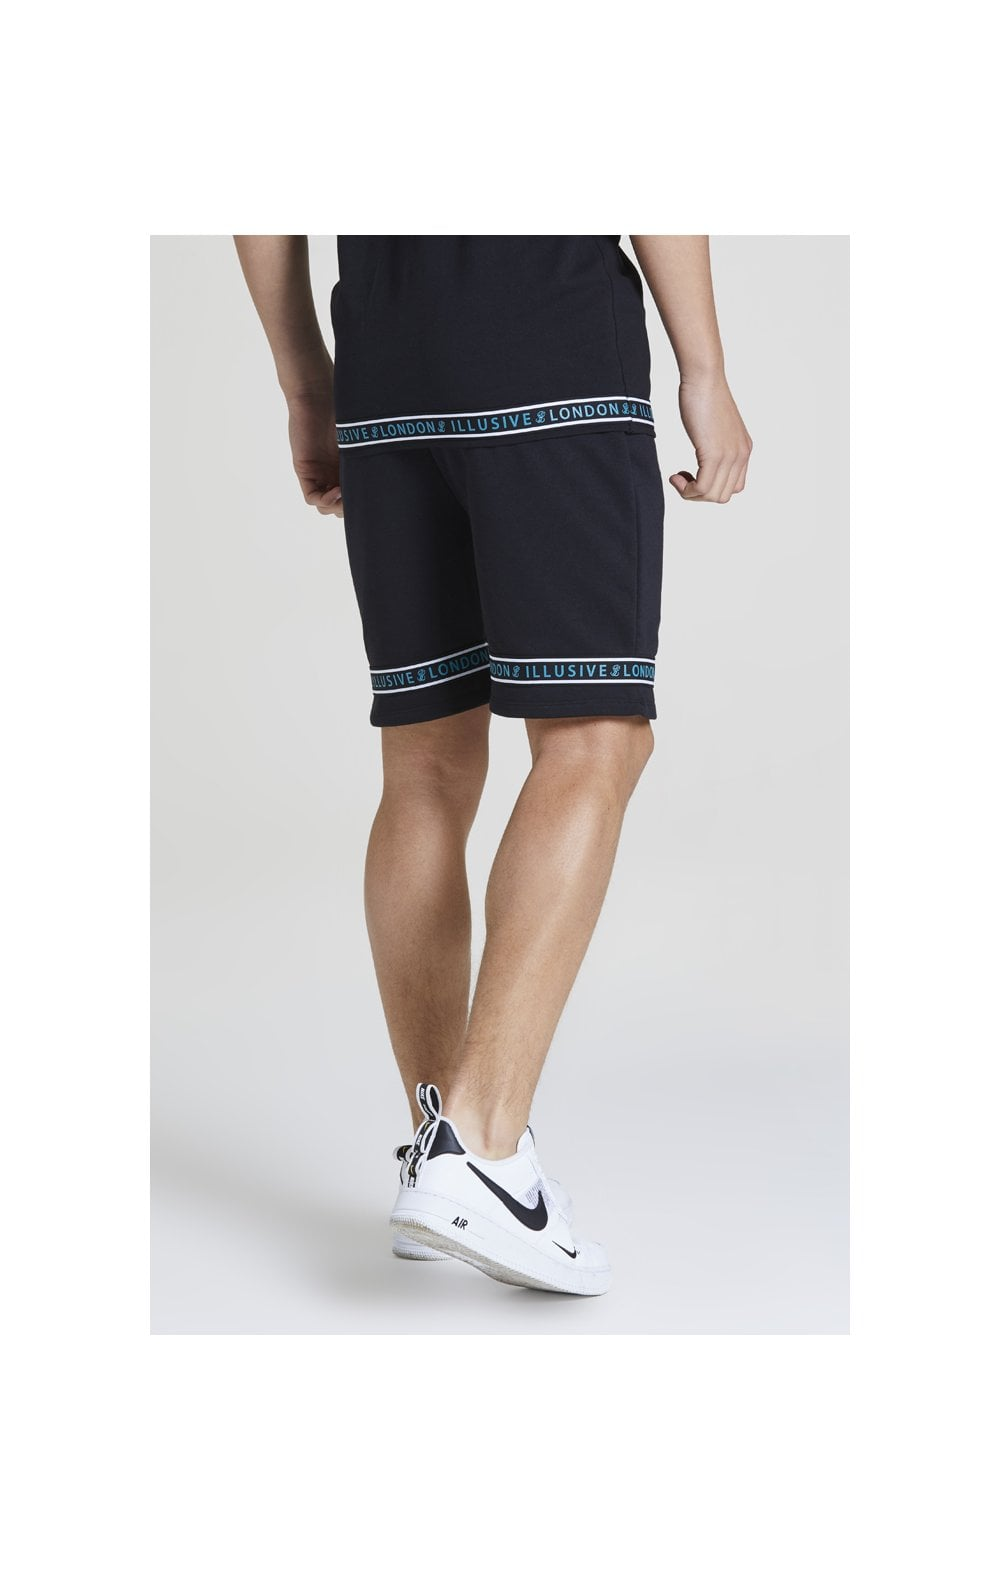 Illusive London Branded Jersey Shorts - Black & Teal Green (1)